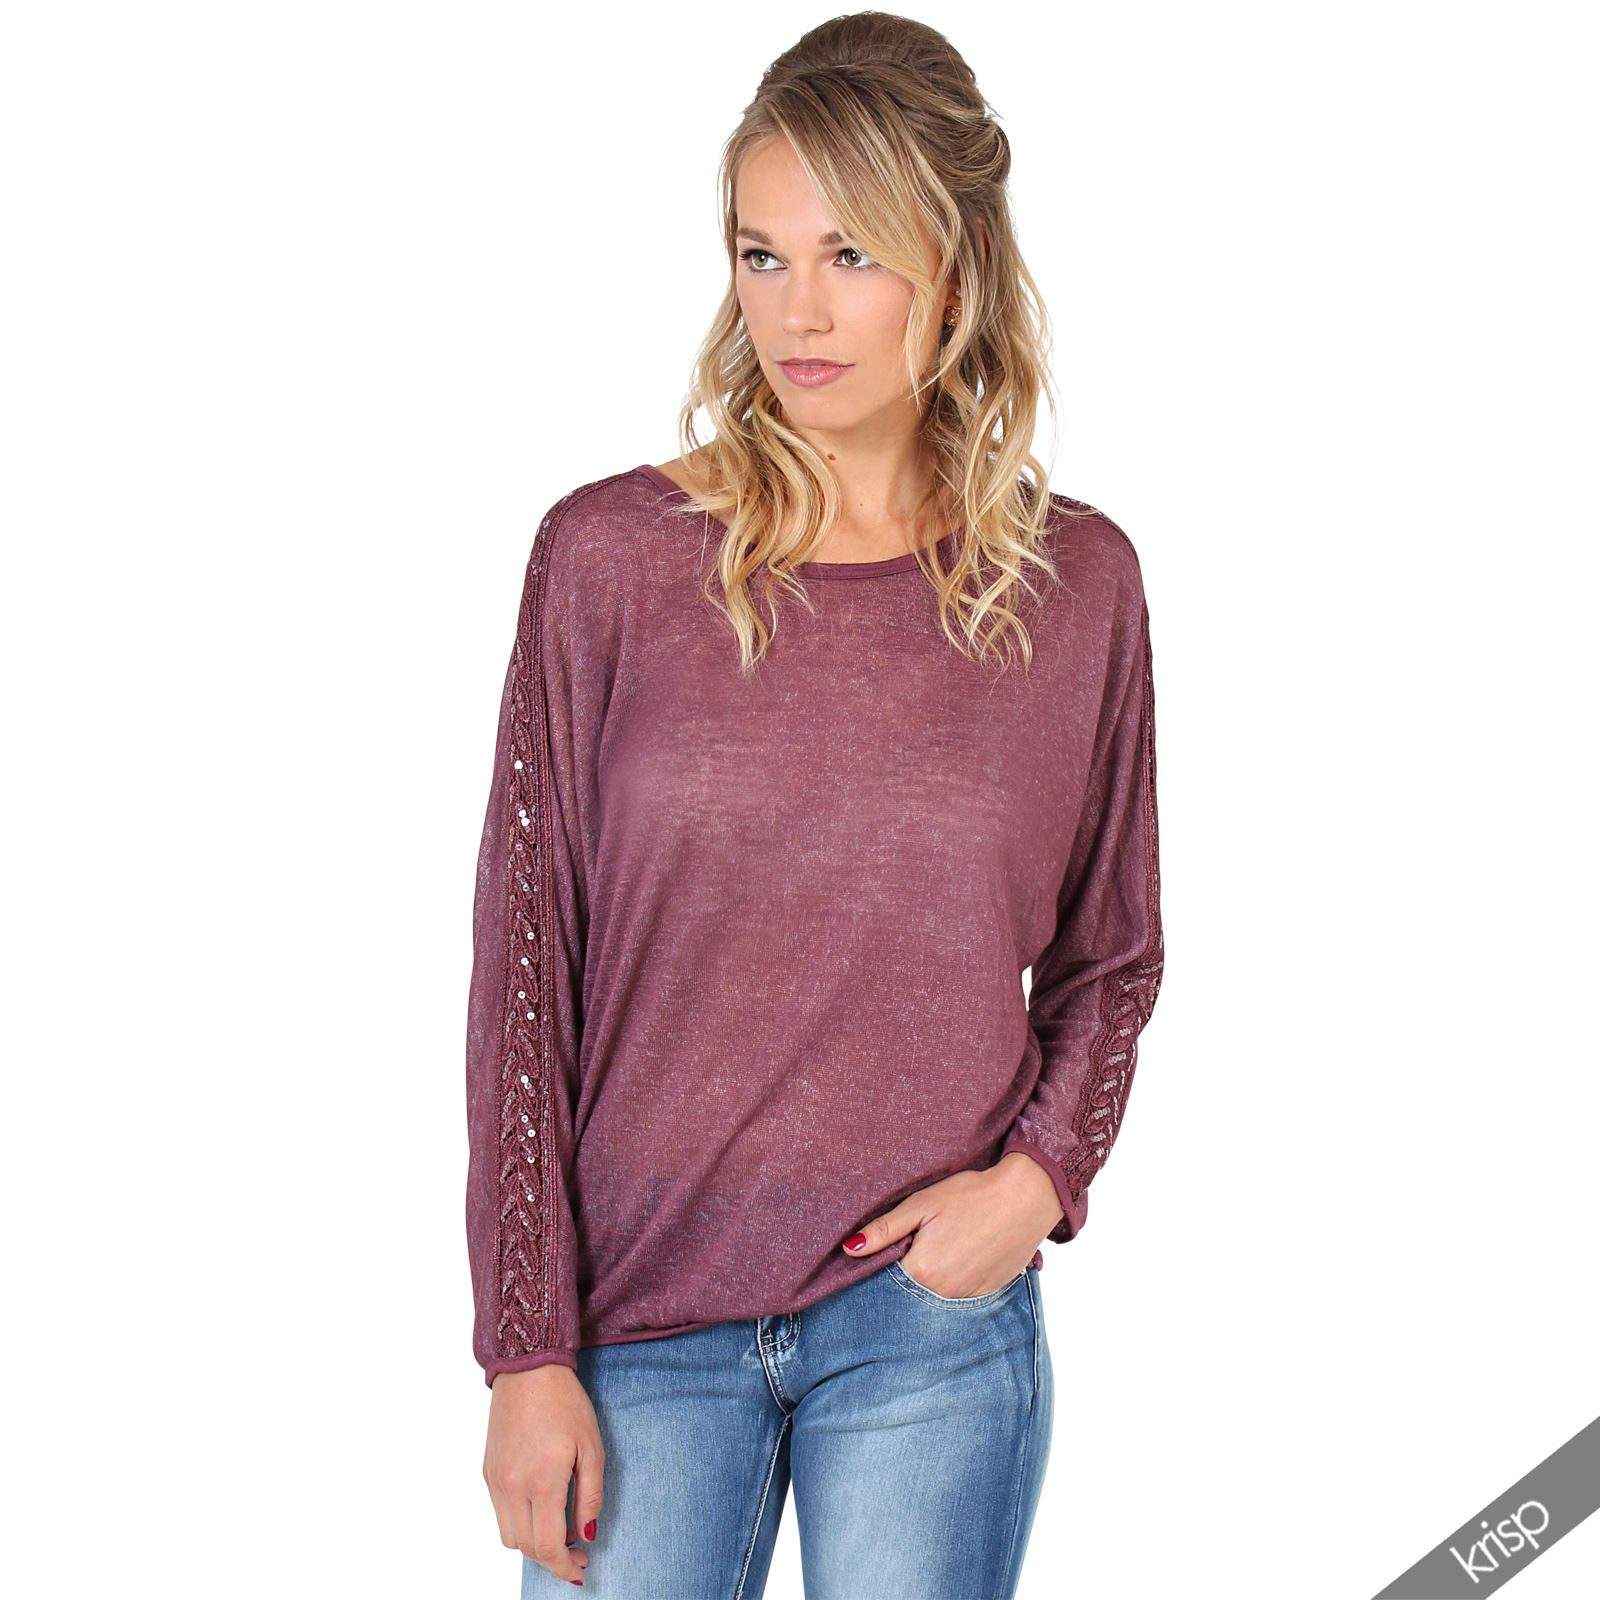 Shop for womens tunic sweatshirts online at Target. Free shipping on purchases over $35 and save 5% every day with your Target REDcard.